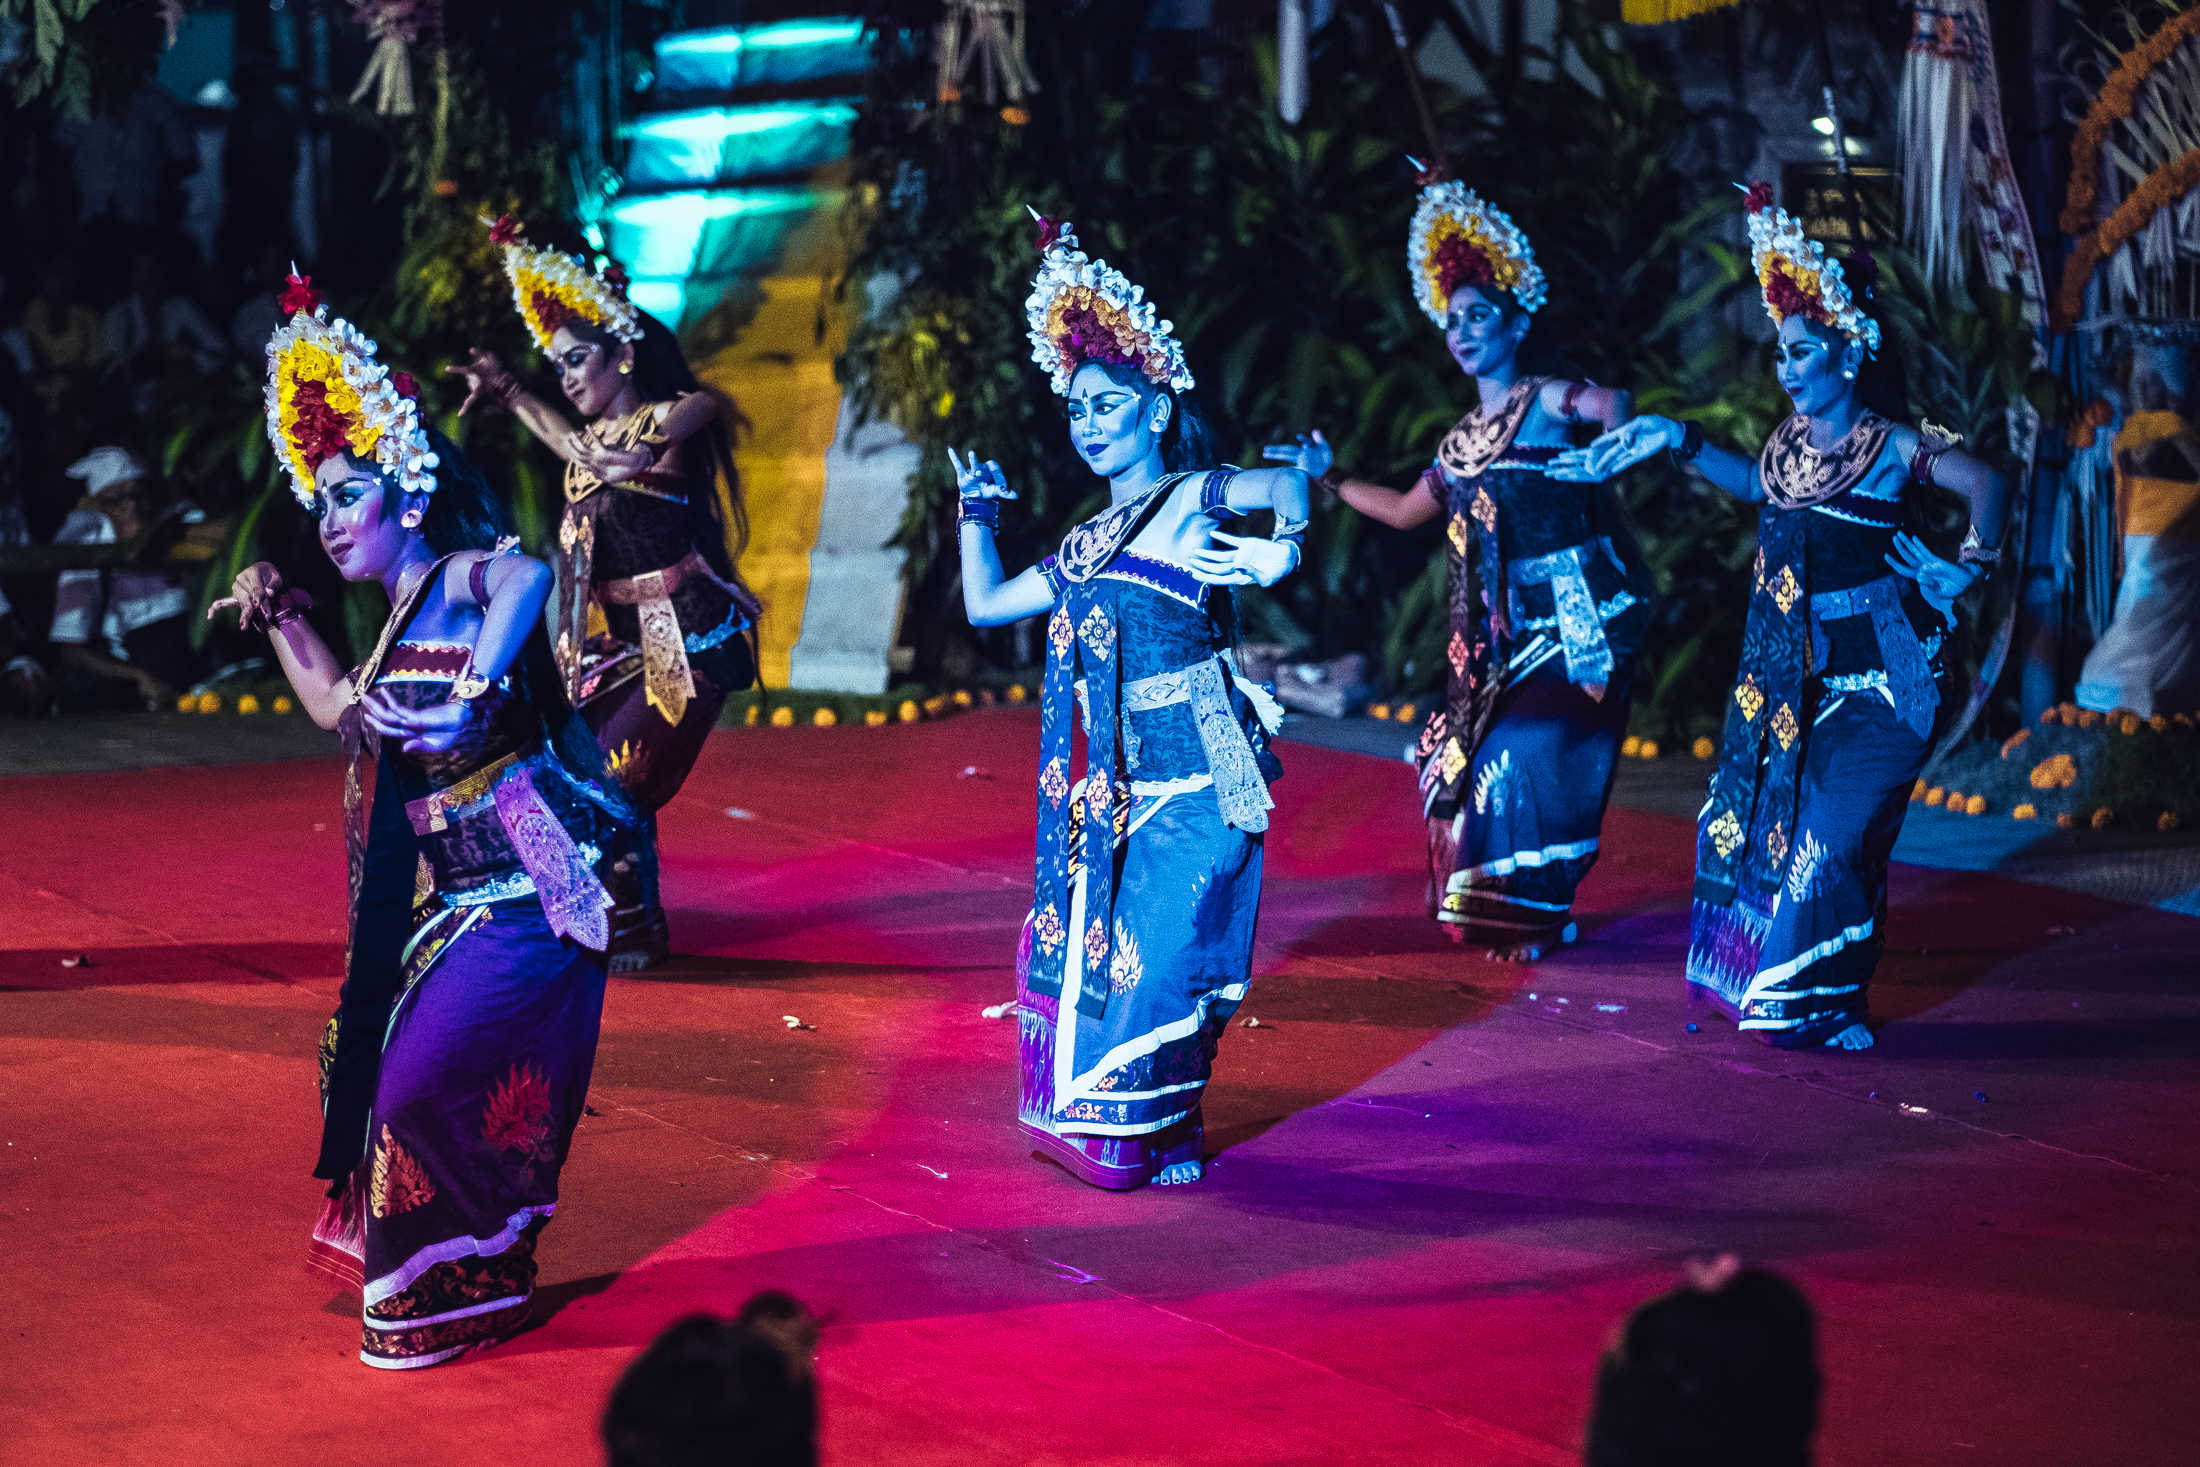 Pragina - The Balinese dancers, known as Pragina, move with very dramatic body movements, particularly in the expression of their eyes, pursed mouth, and double-jointed fingers.